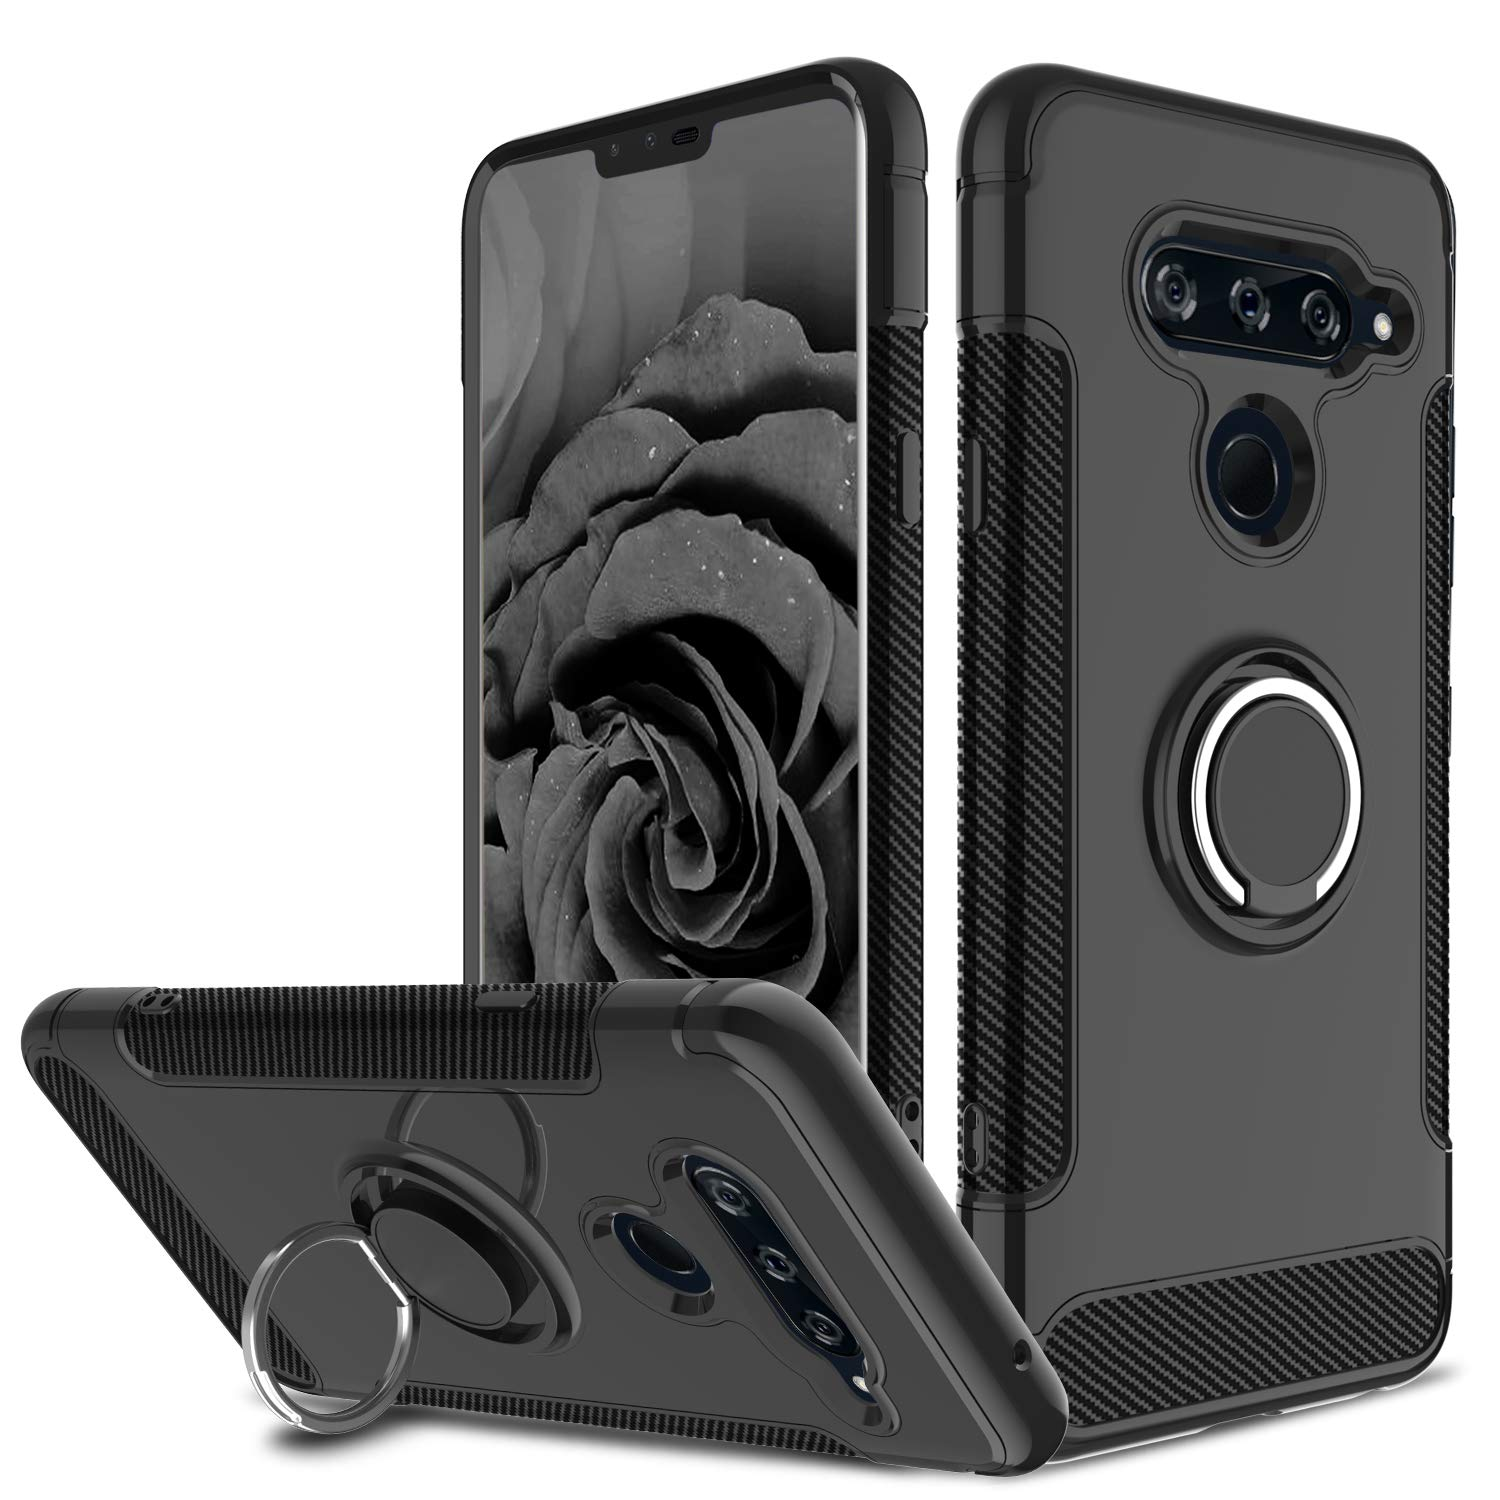 LG V40 ThinQ Case, LG V40 Case, DONWELL 360 Degree Rotating Ring Holder with Kickstand Protective Phone Cases Cover Compatible LG V40 ThinQ 2018, Black